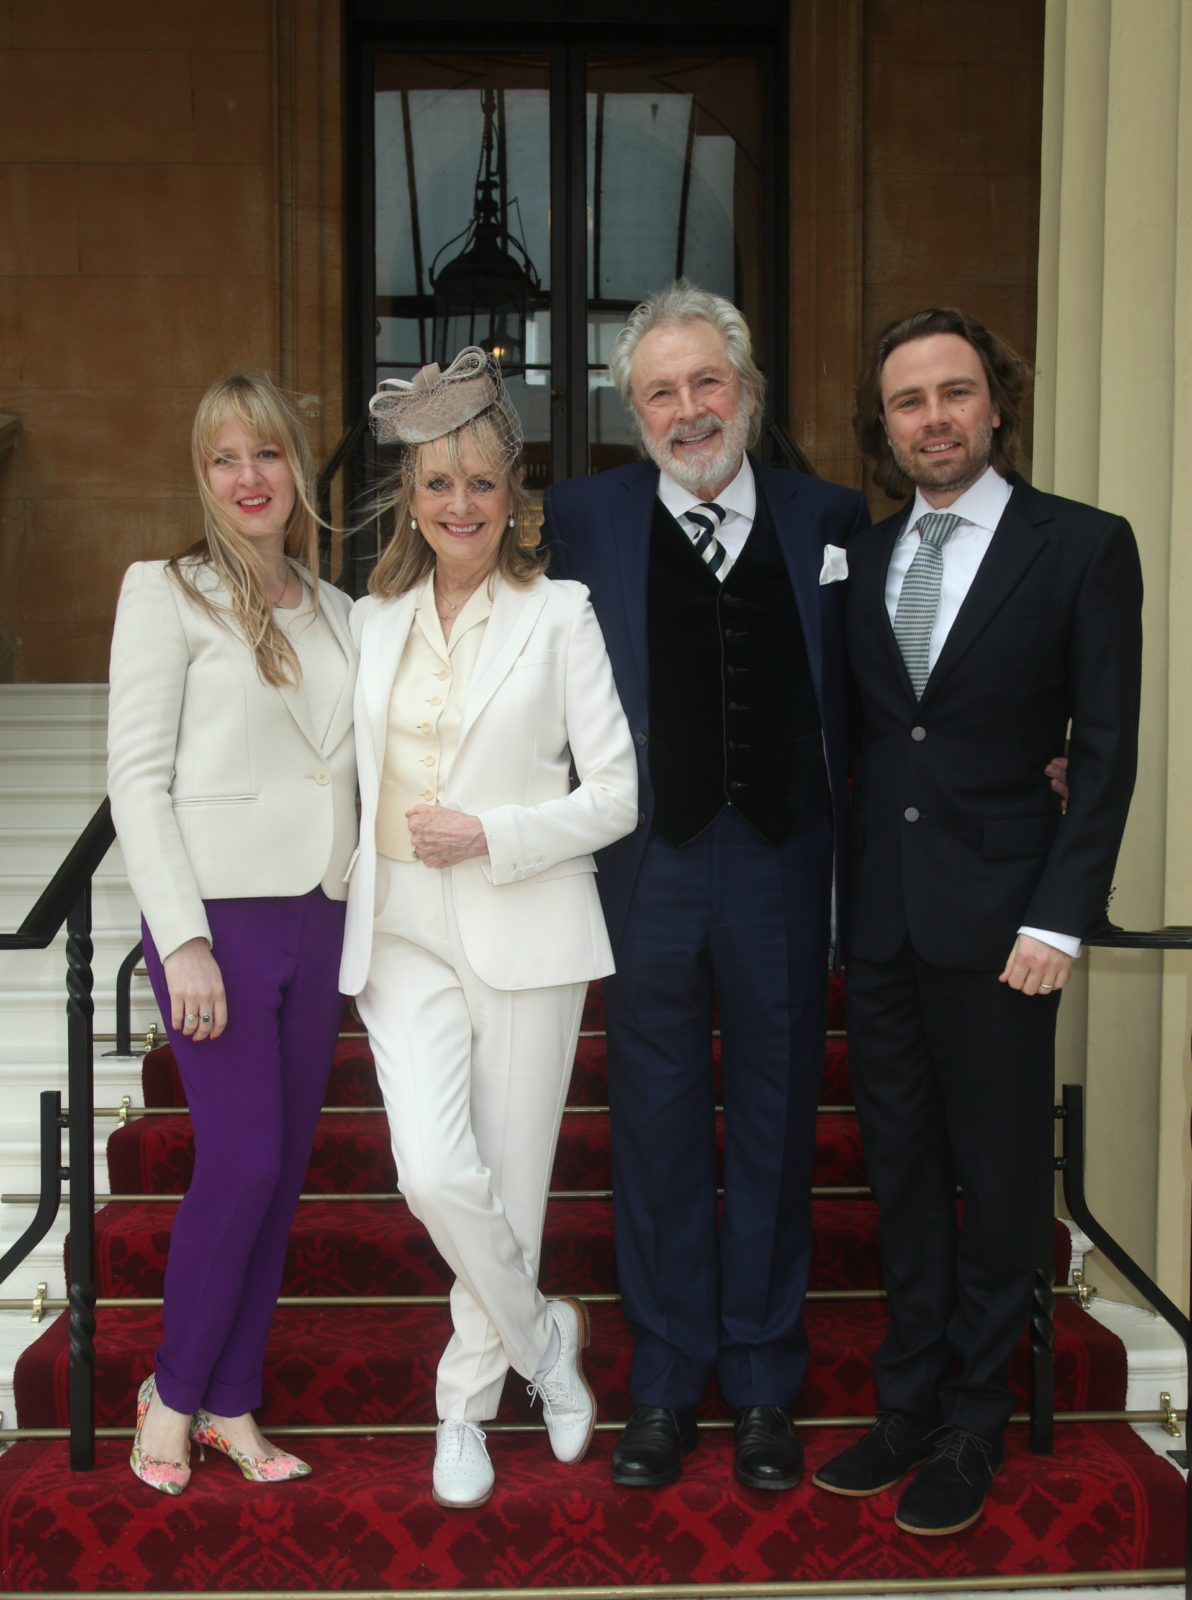 Twiggy was joined by her actor husband Leigh, son Jason and daughter Carly. Source: Getty